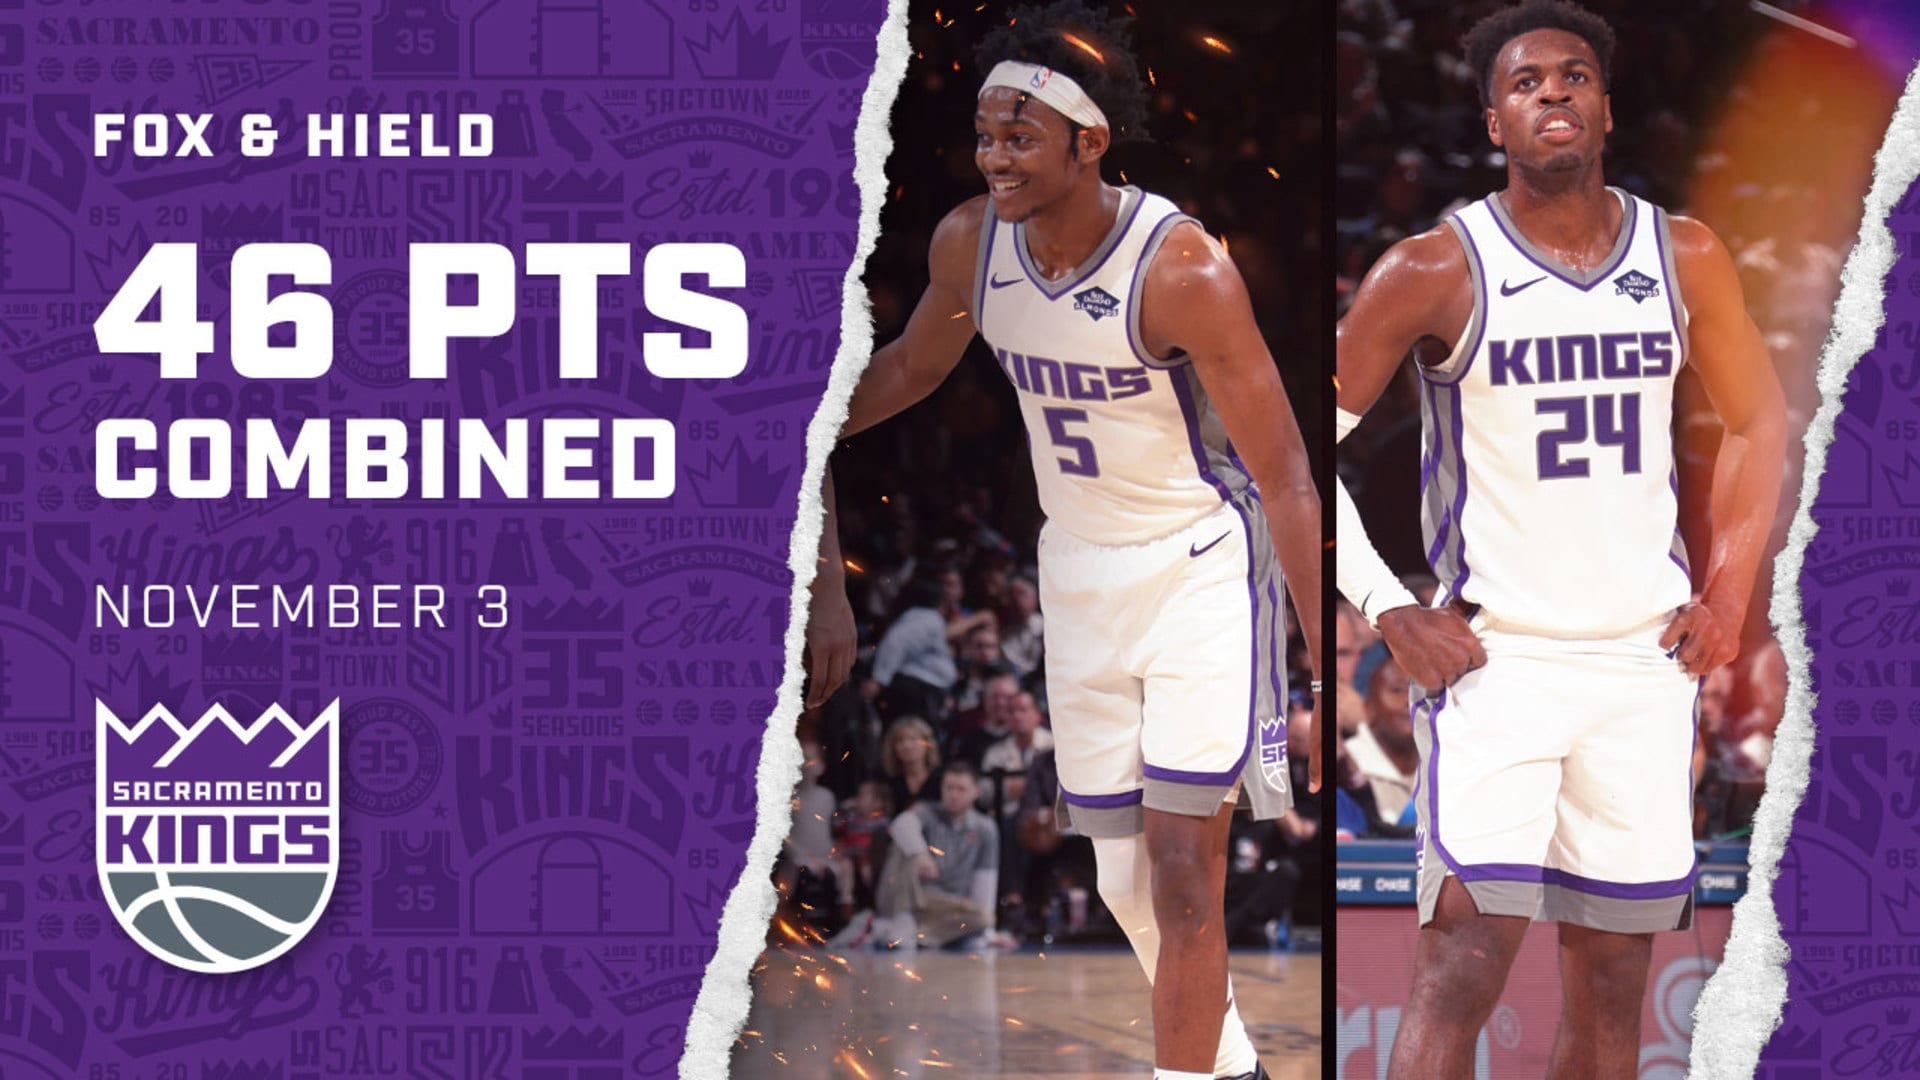 Kings Backcourt Dominates in NYC!